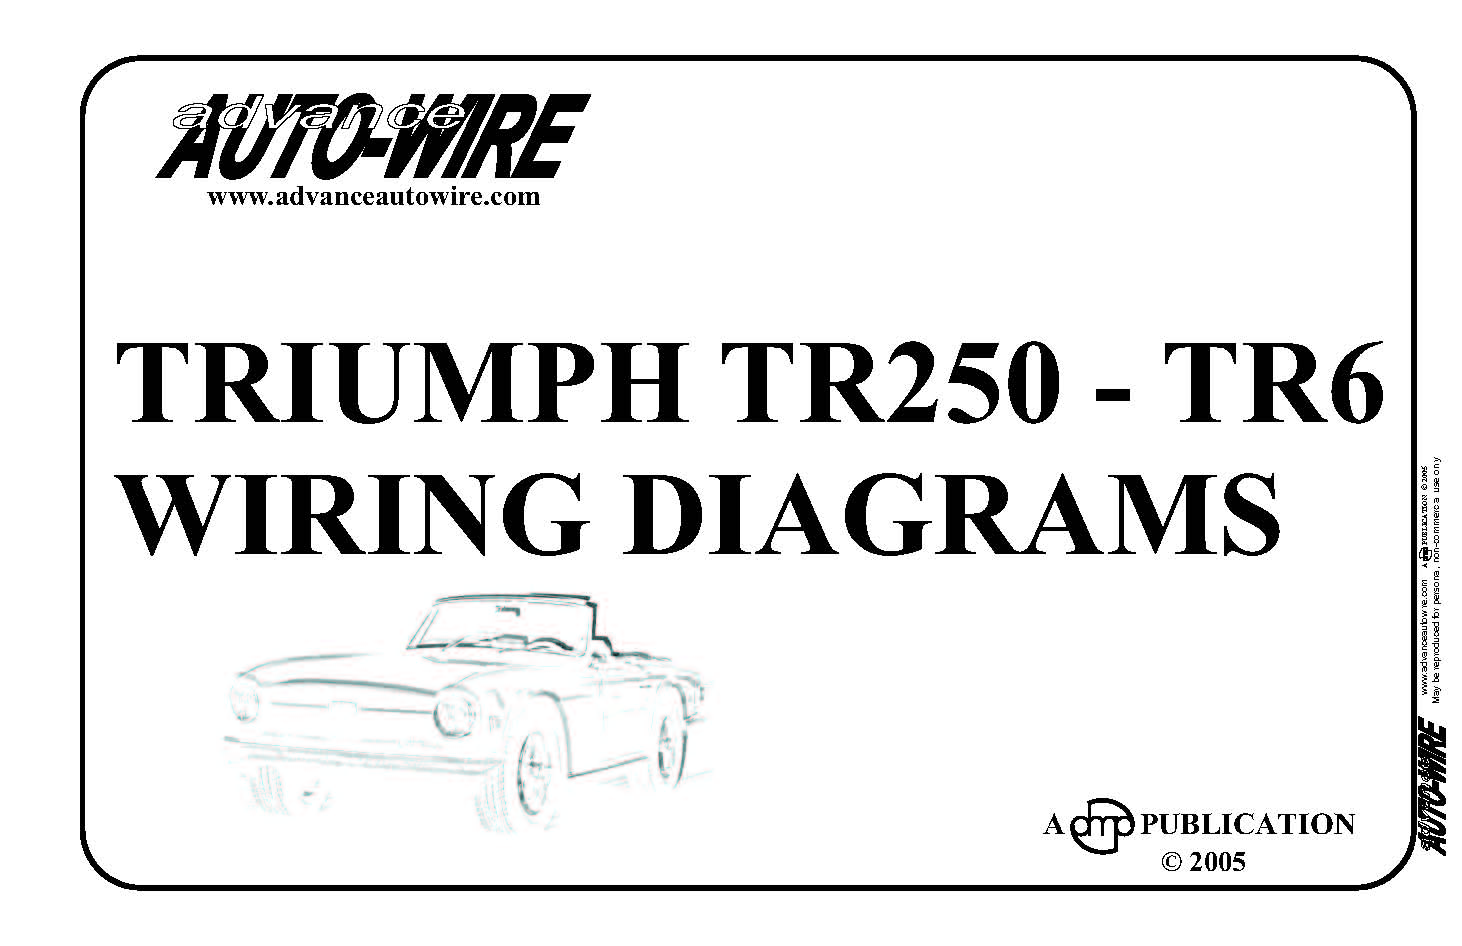 hight resolution of vitessesteve blog triumph tr250 tr6 wiring diagrams in colourtriumph tr250 tr6 wiring diagrams in